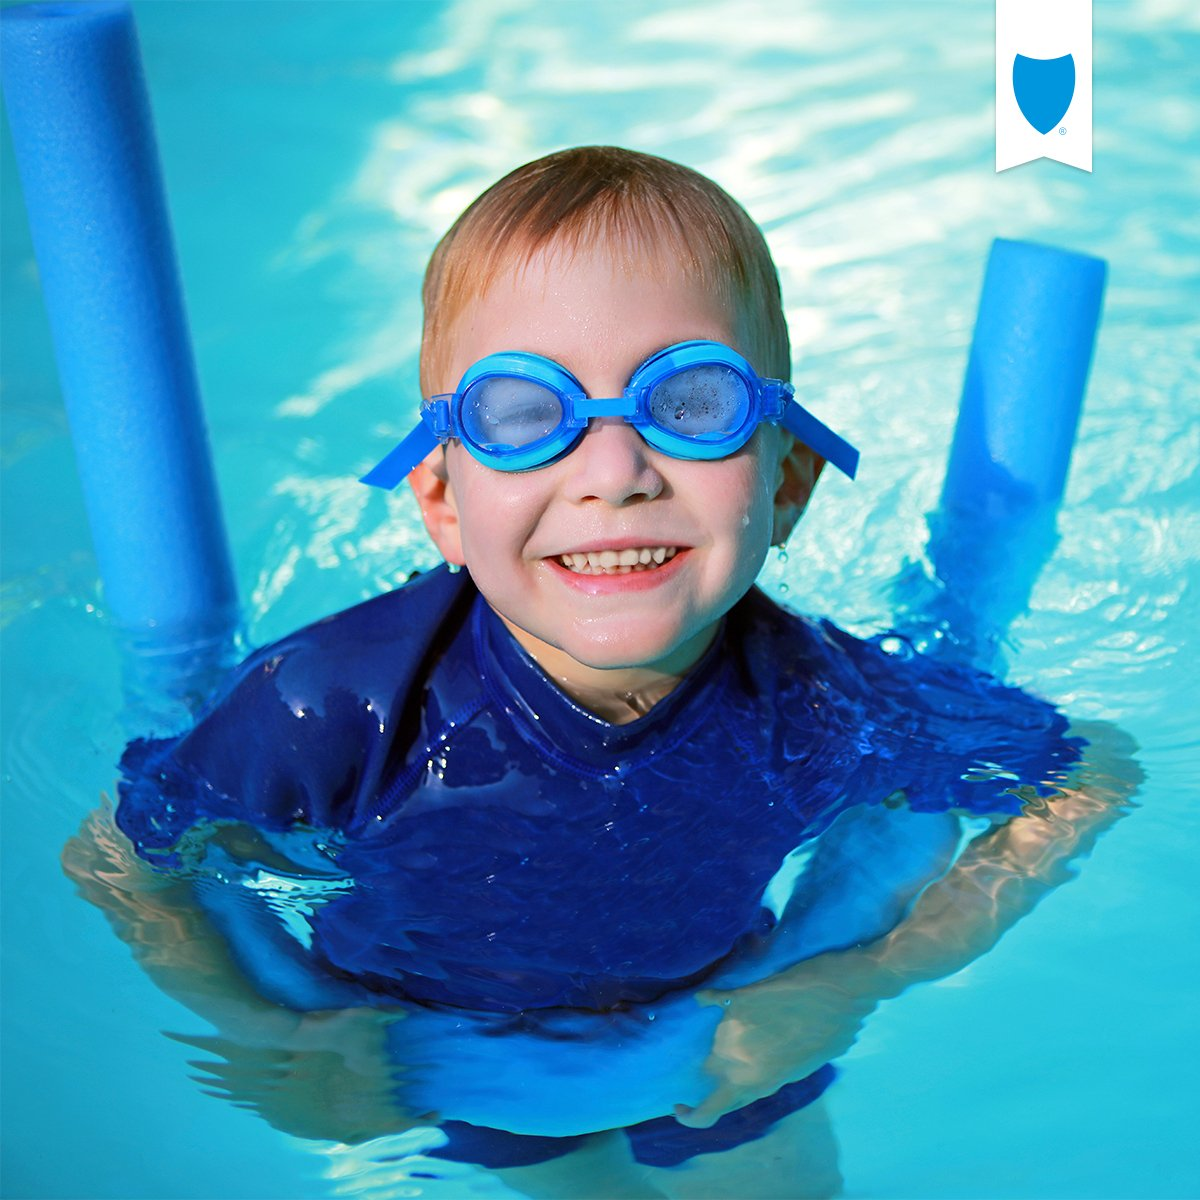 With summer around the corner, it's a great time for families to embrace pool & beach water safety. #LearnToSwimDay https://t.co/OoVTPEd3gK